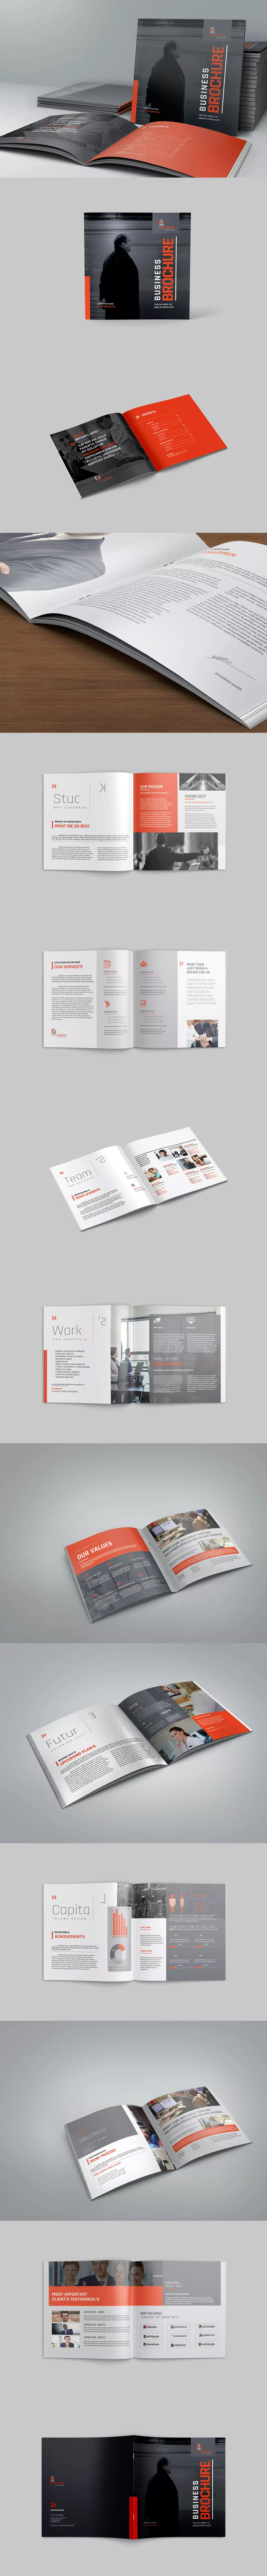 Square Brochure Template InDesign INDD | EDITORIAL | Pinterest ...